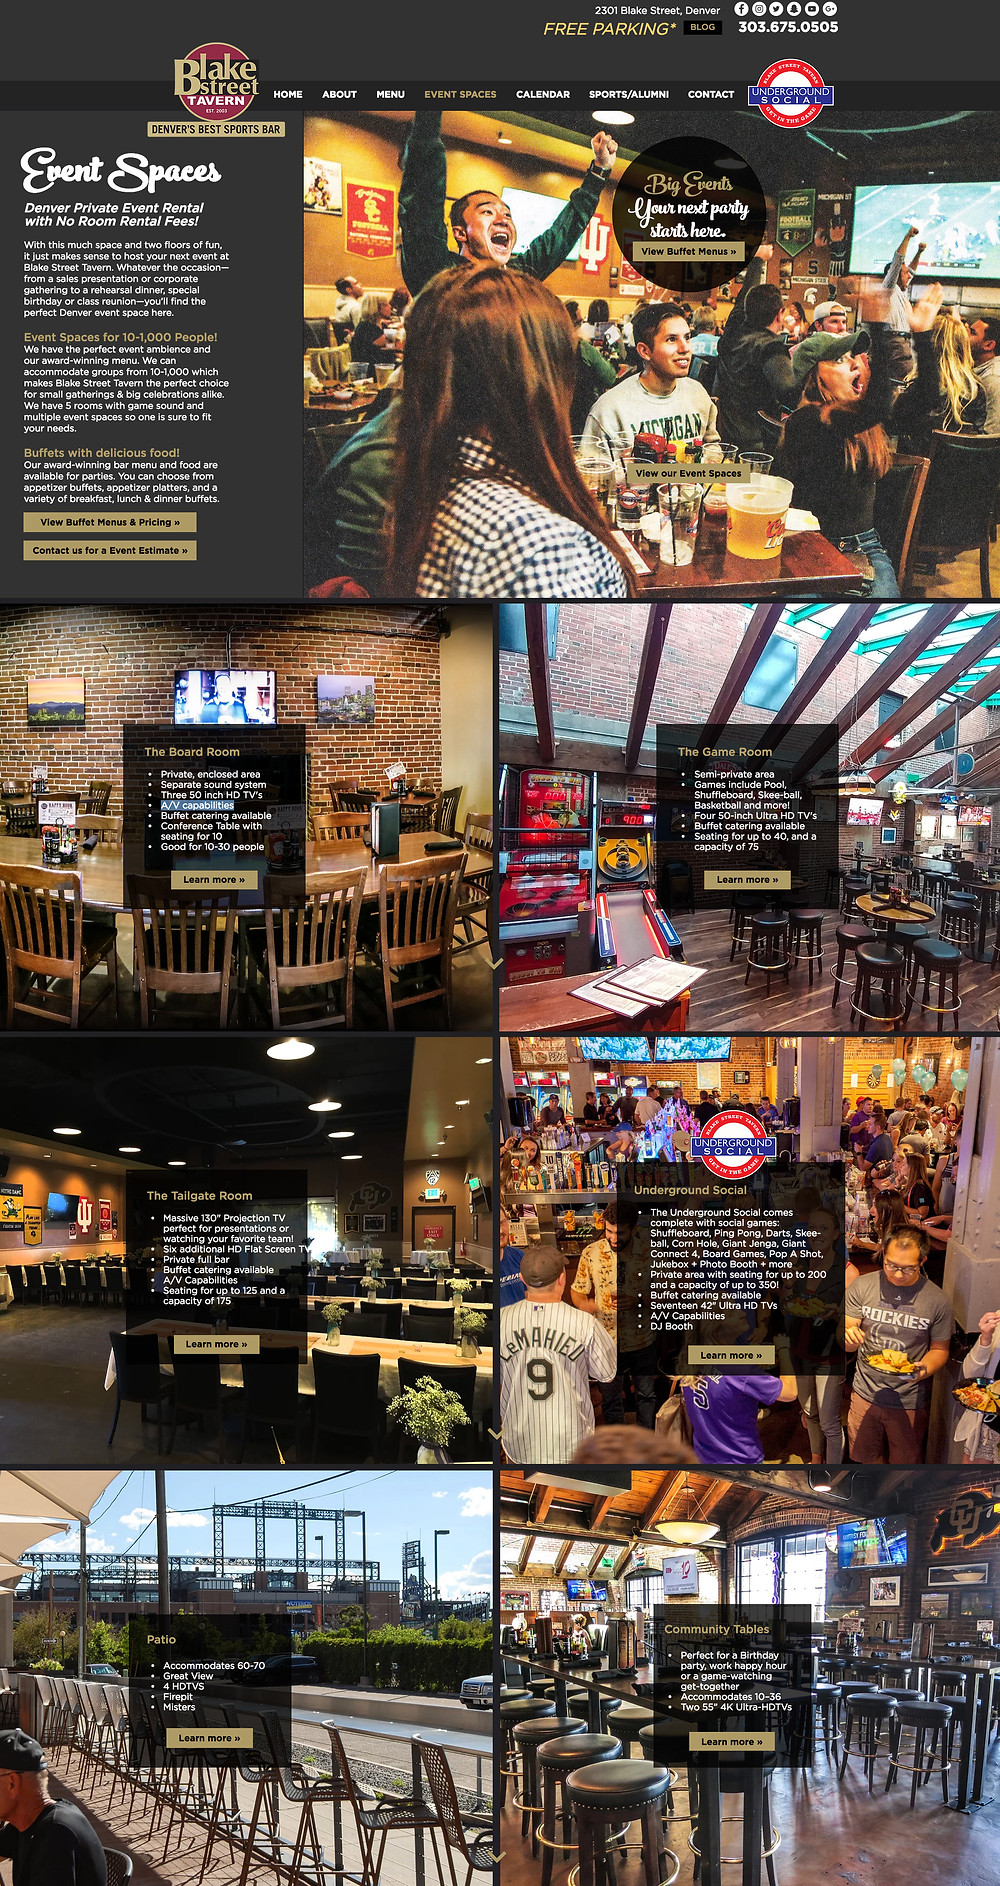 Wix Designer Portfolio - Website Design for Denver Sports Bar, Subpage Design